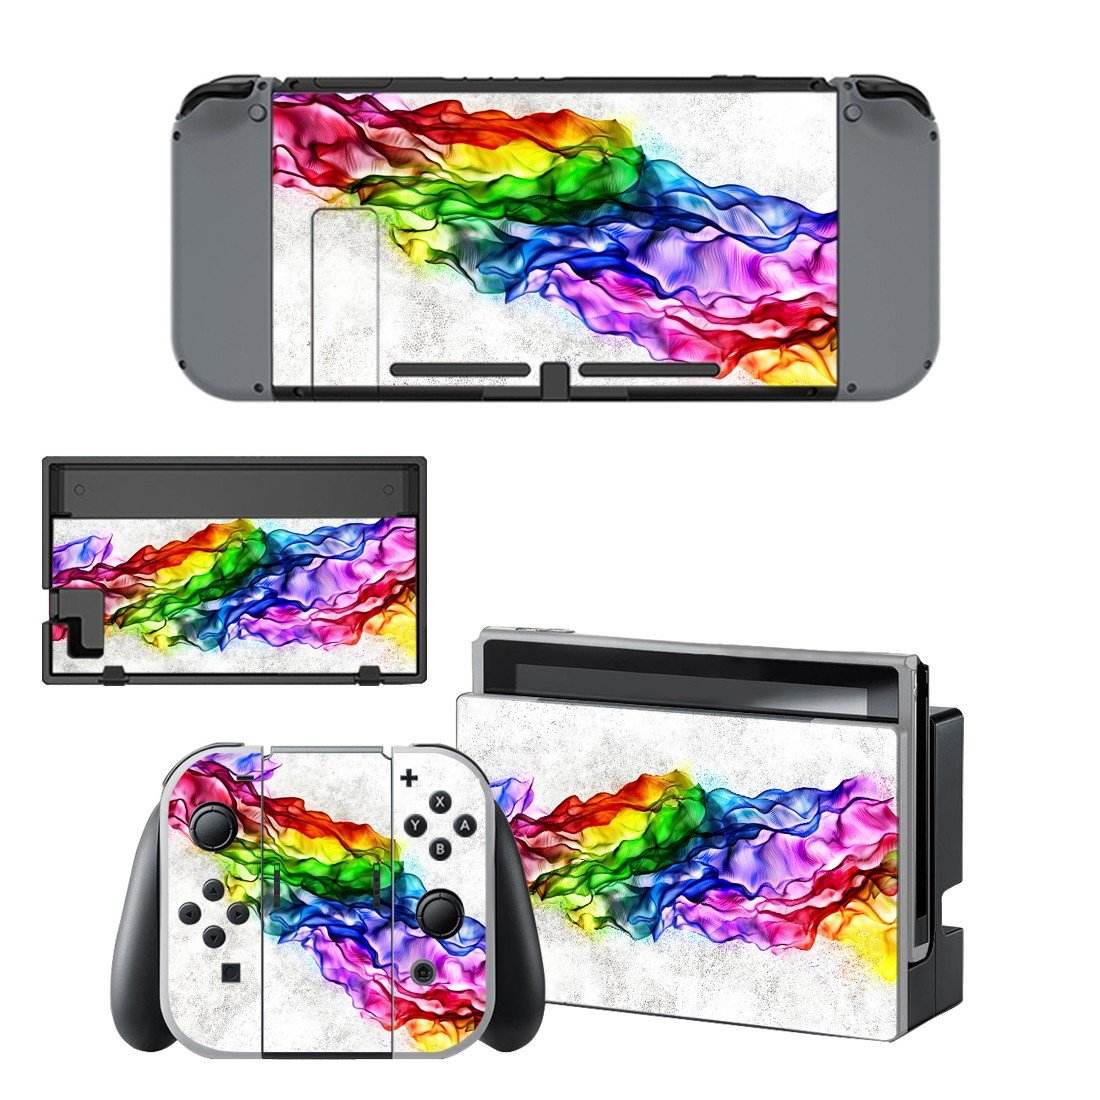 Colorful wallpaper decal for Nintendo switch console sticker skin